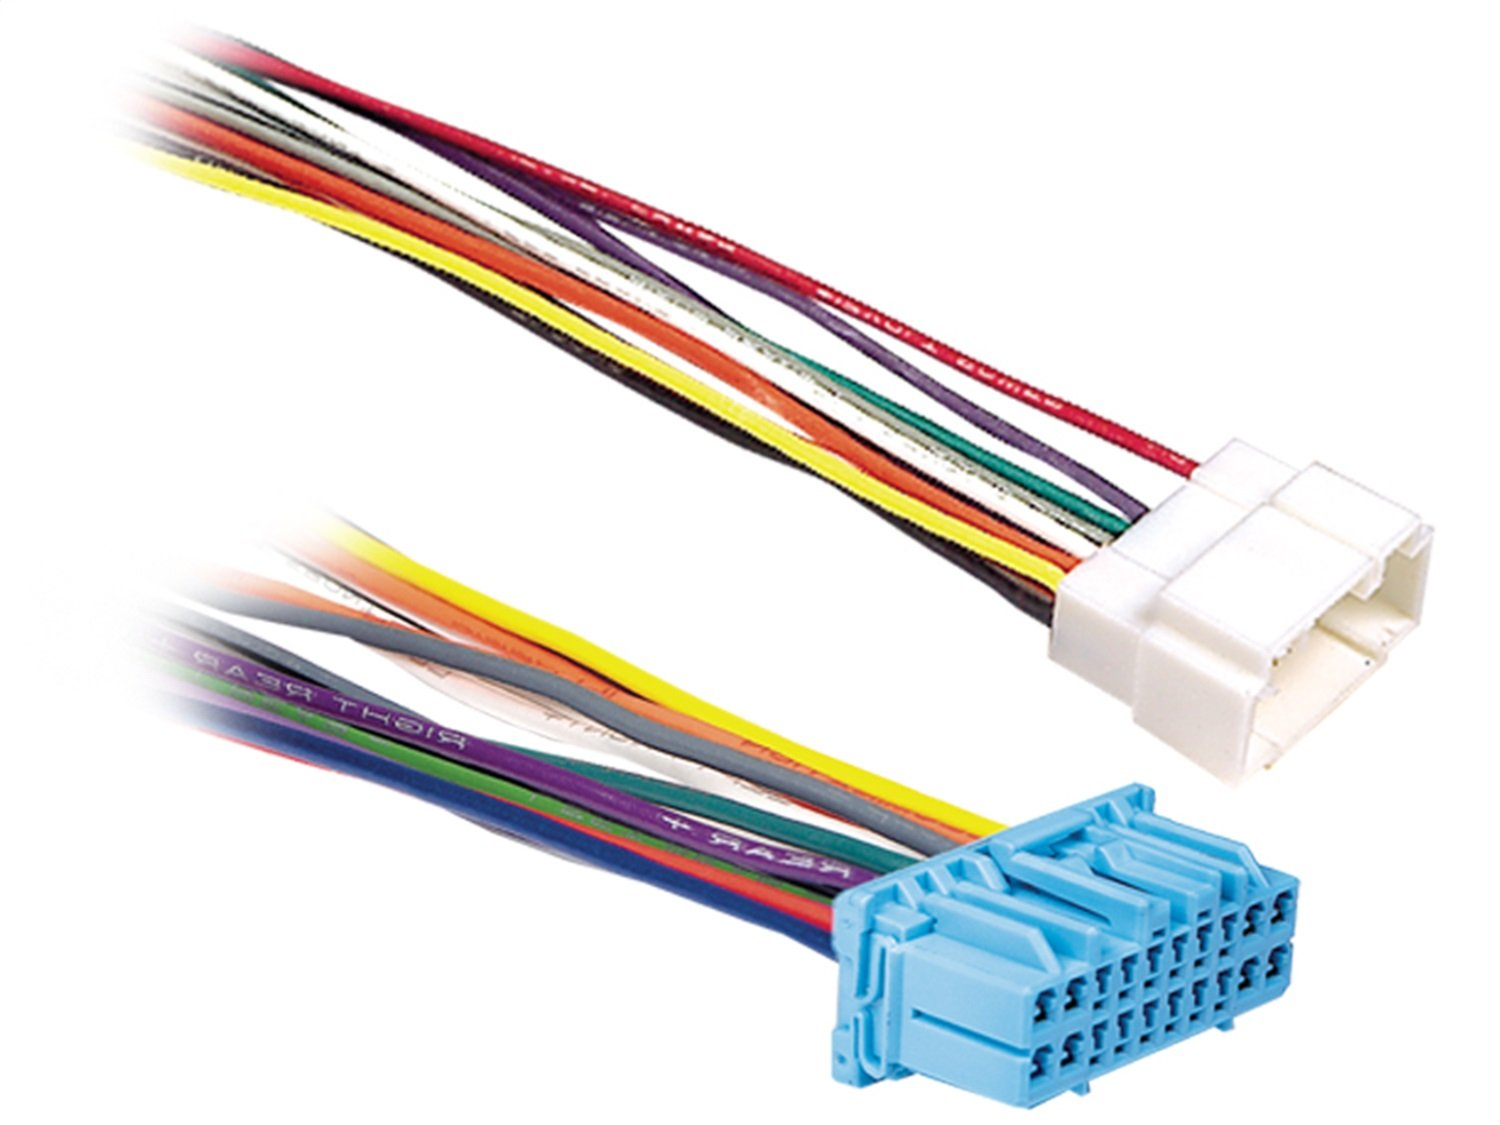 Metra Bt 1721 A Aftermarket Bluetooth Integration Parrot Mki9200 Wiring Harness For Honda Acura 1998 And Up Car Electronics